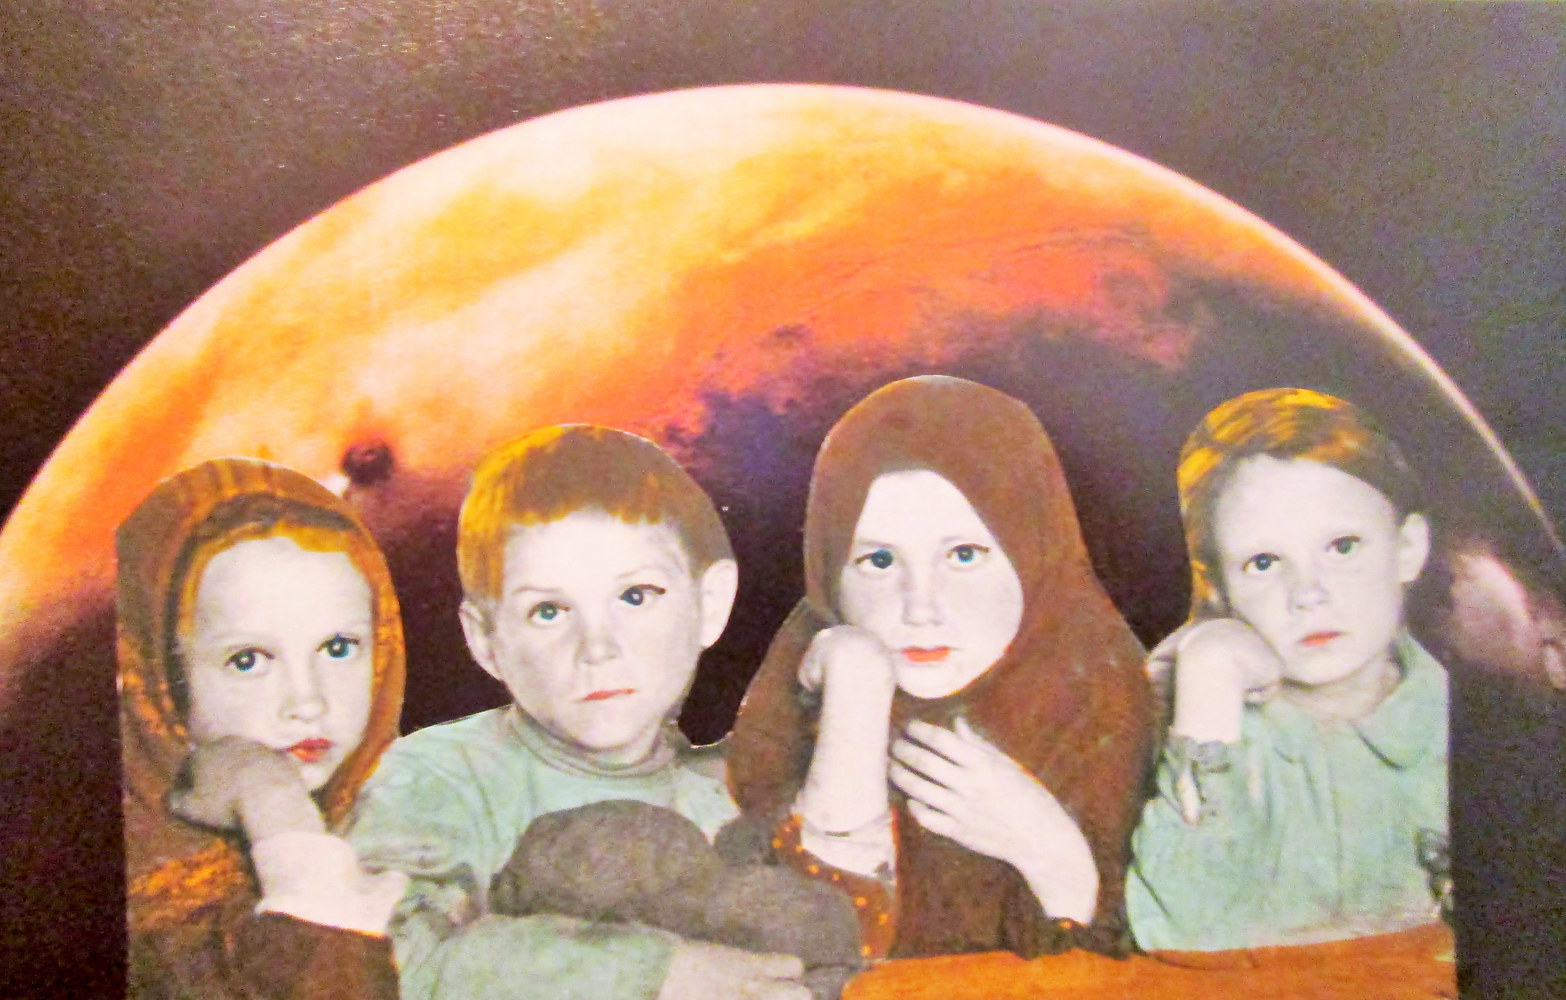 Children Beneath a Strange Moon  by Jo Ann Tunnell Muench